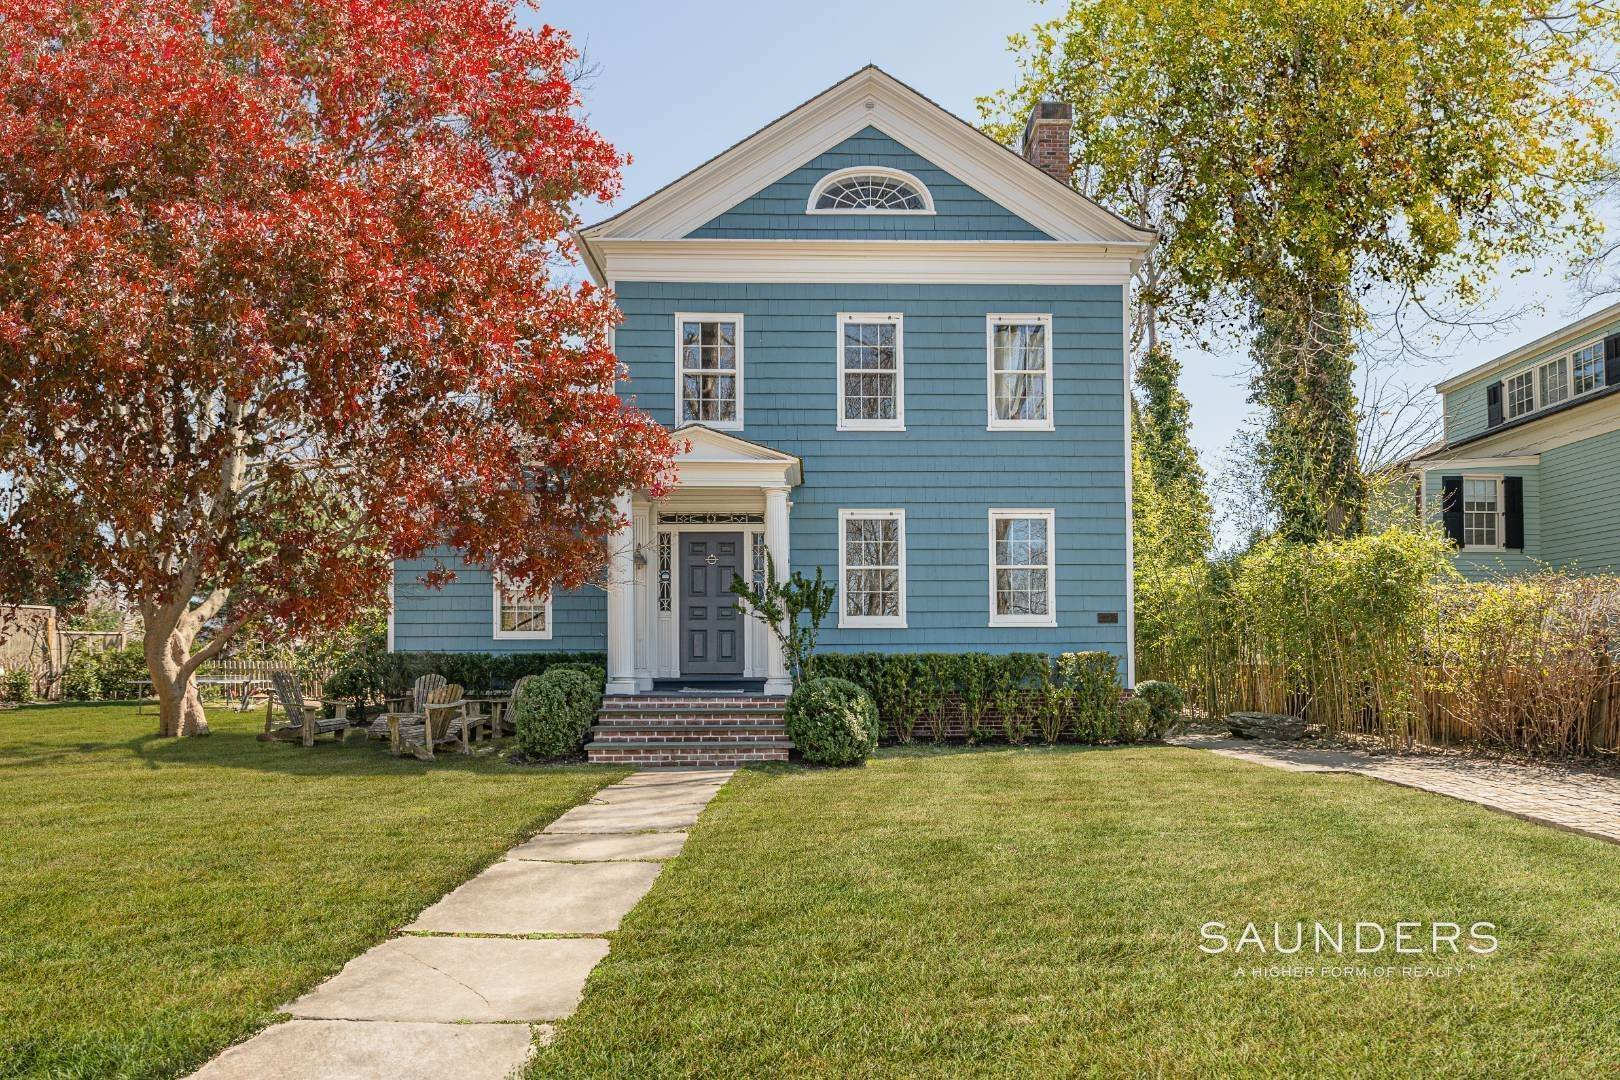 Single Family Homes for Sale at Historic Home In Sag Harbor Village 10 High Street, Sag Harbor, Southampton Town, NY 11963